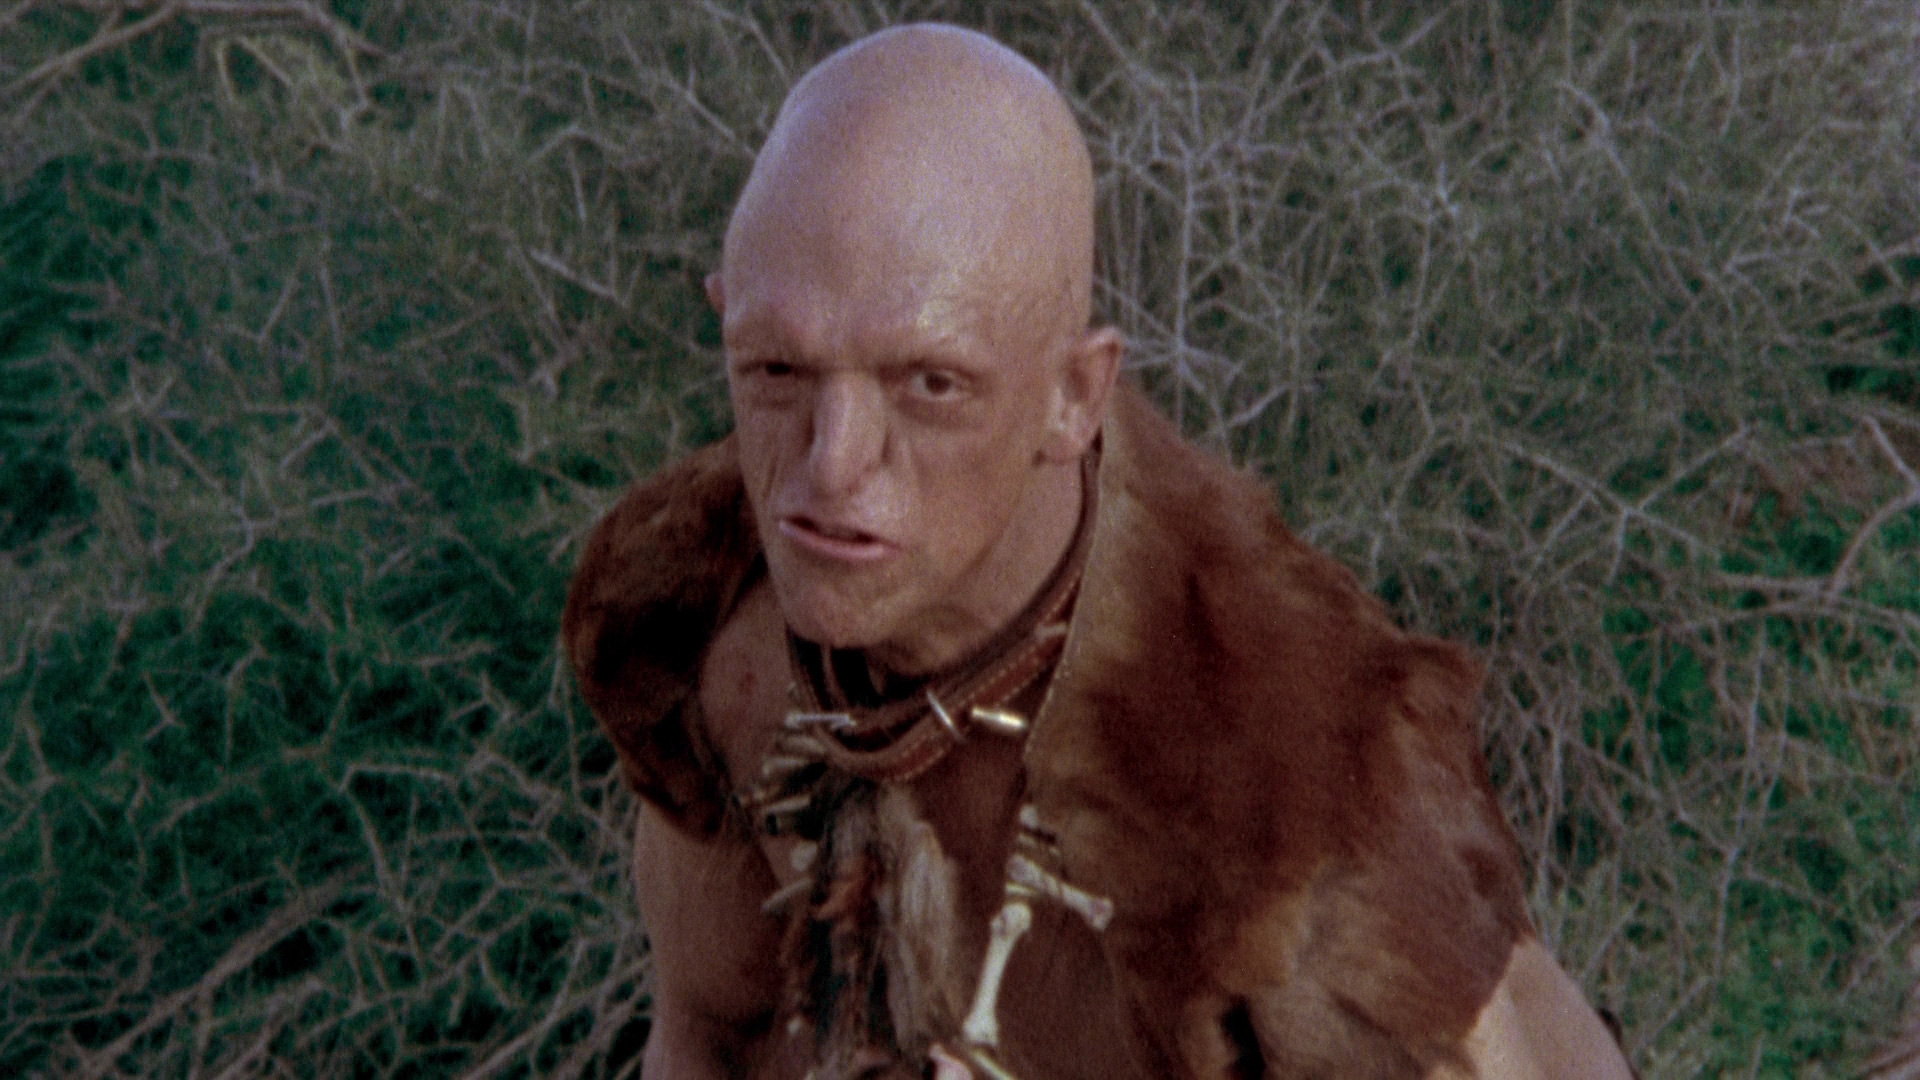 Michael Berryman as Pluto in The Hills Have Eyes (1977)